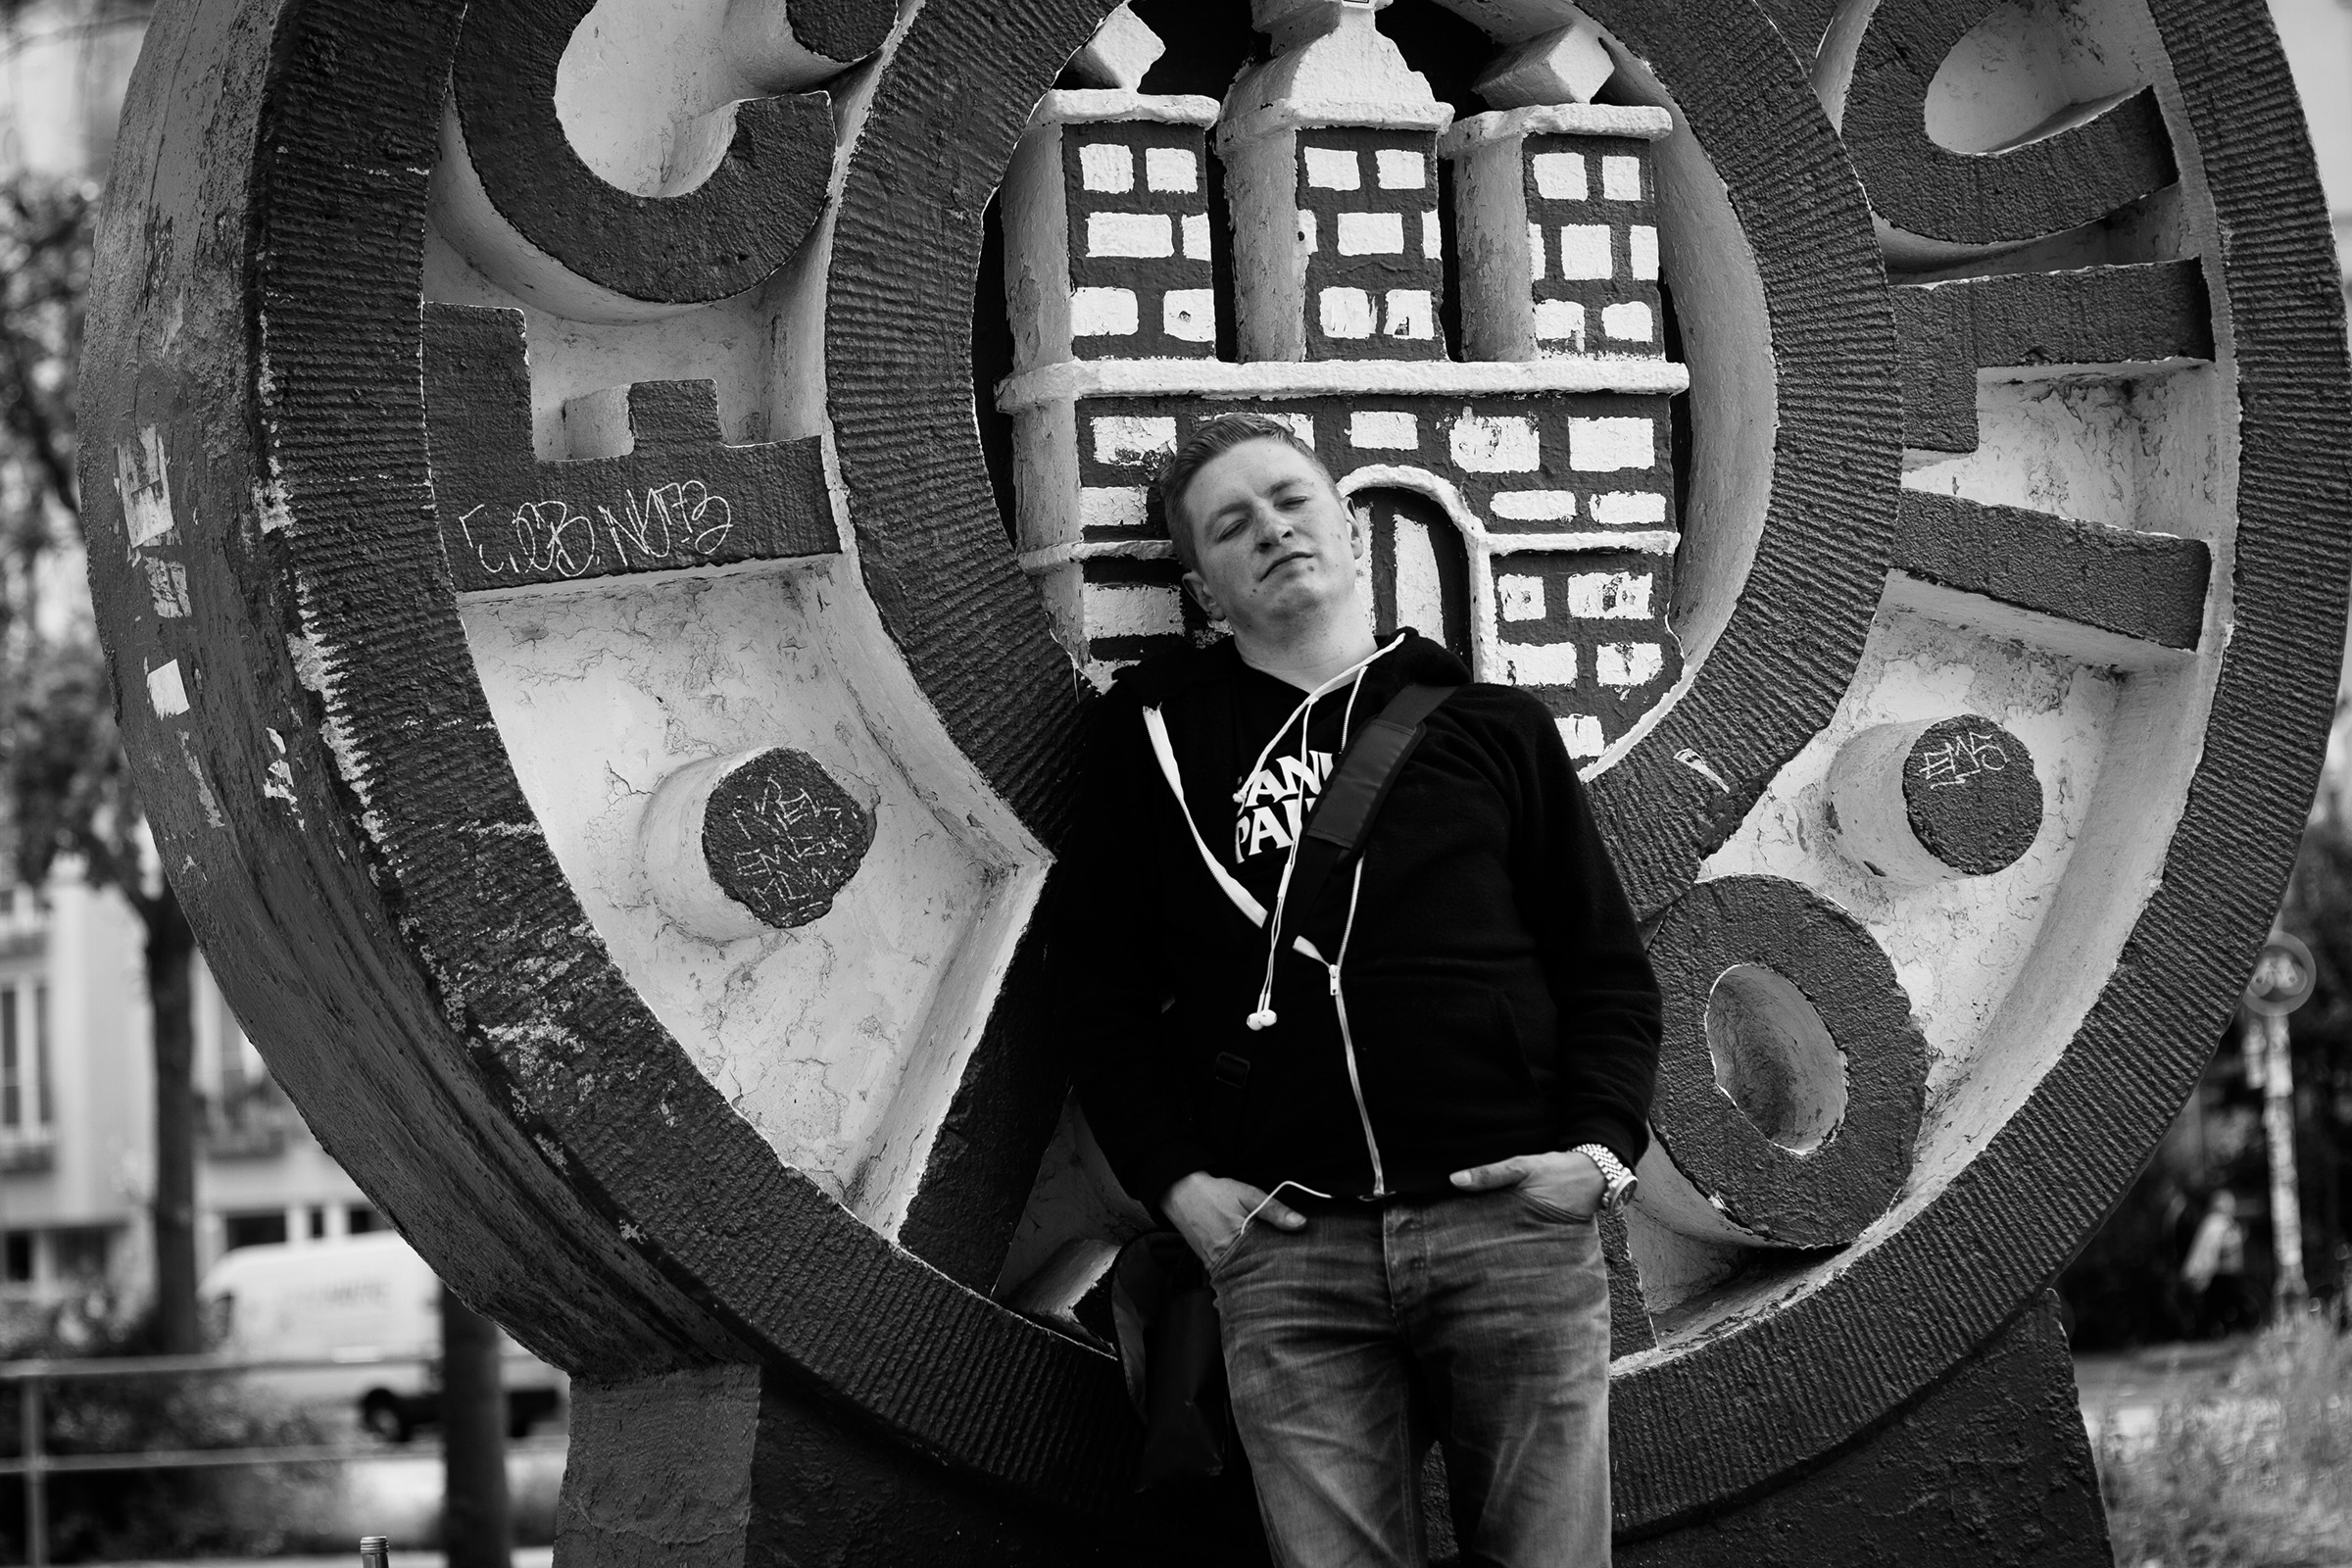 man, male, self, selfpic, selfportrait, hamburg,songquotes © André Schunert